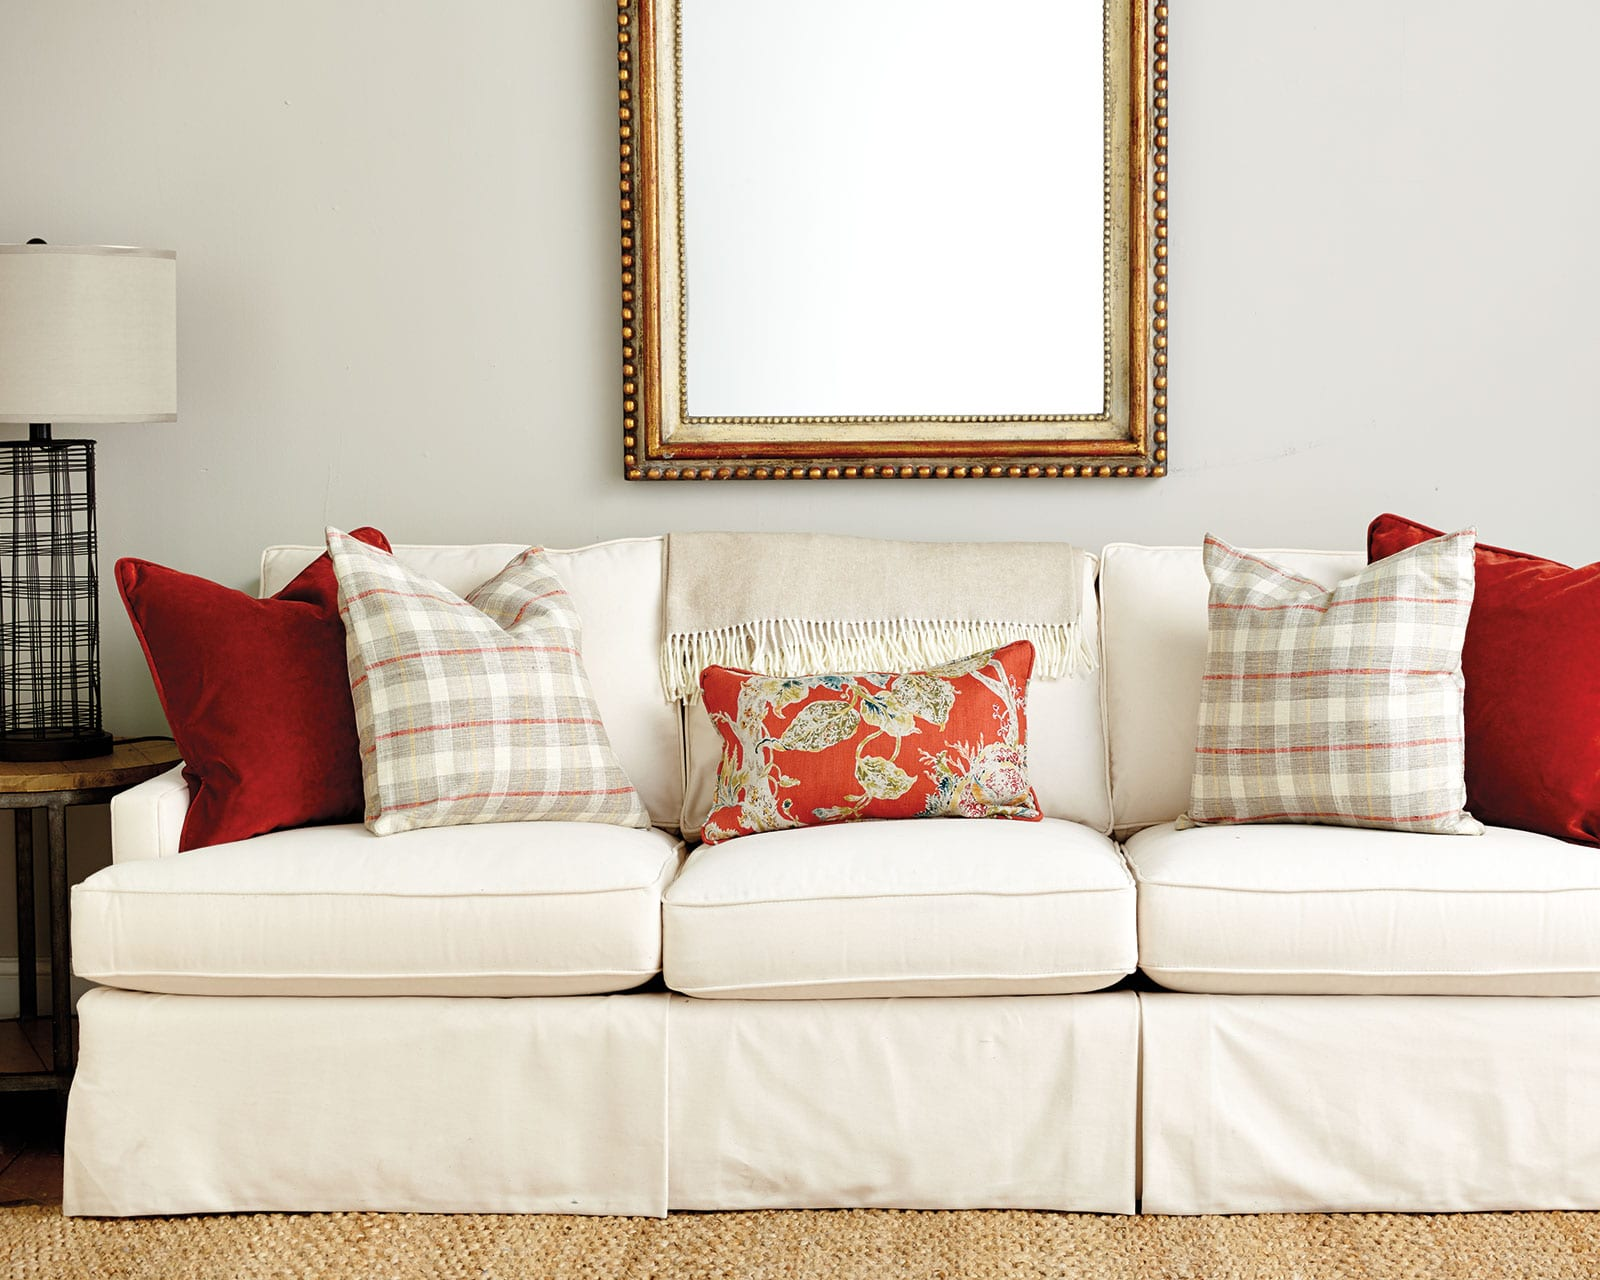 living room decorative pillows how to decorate my modern style guide choosing throw spicy orange on a sofa